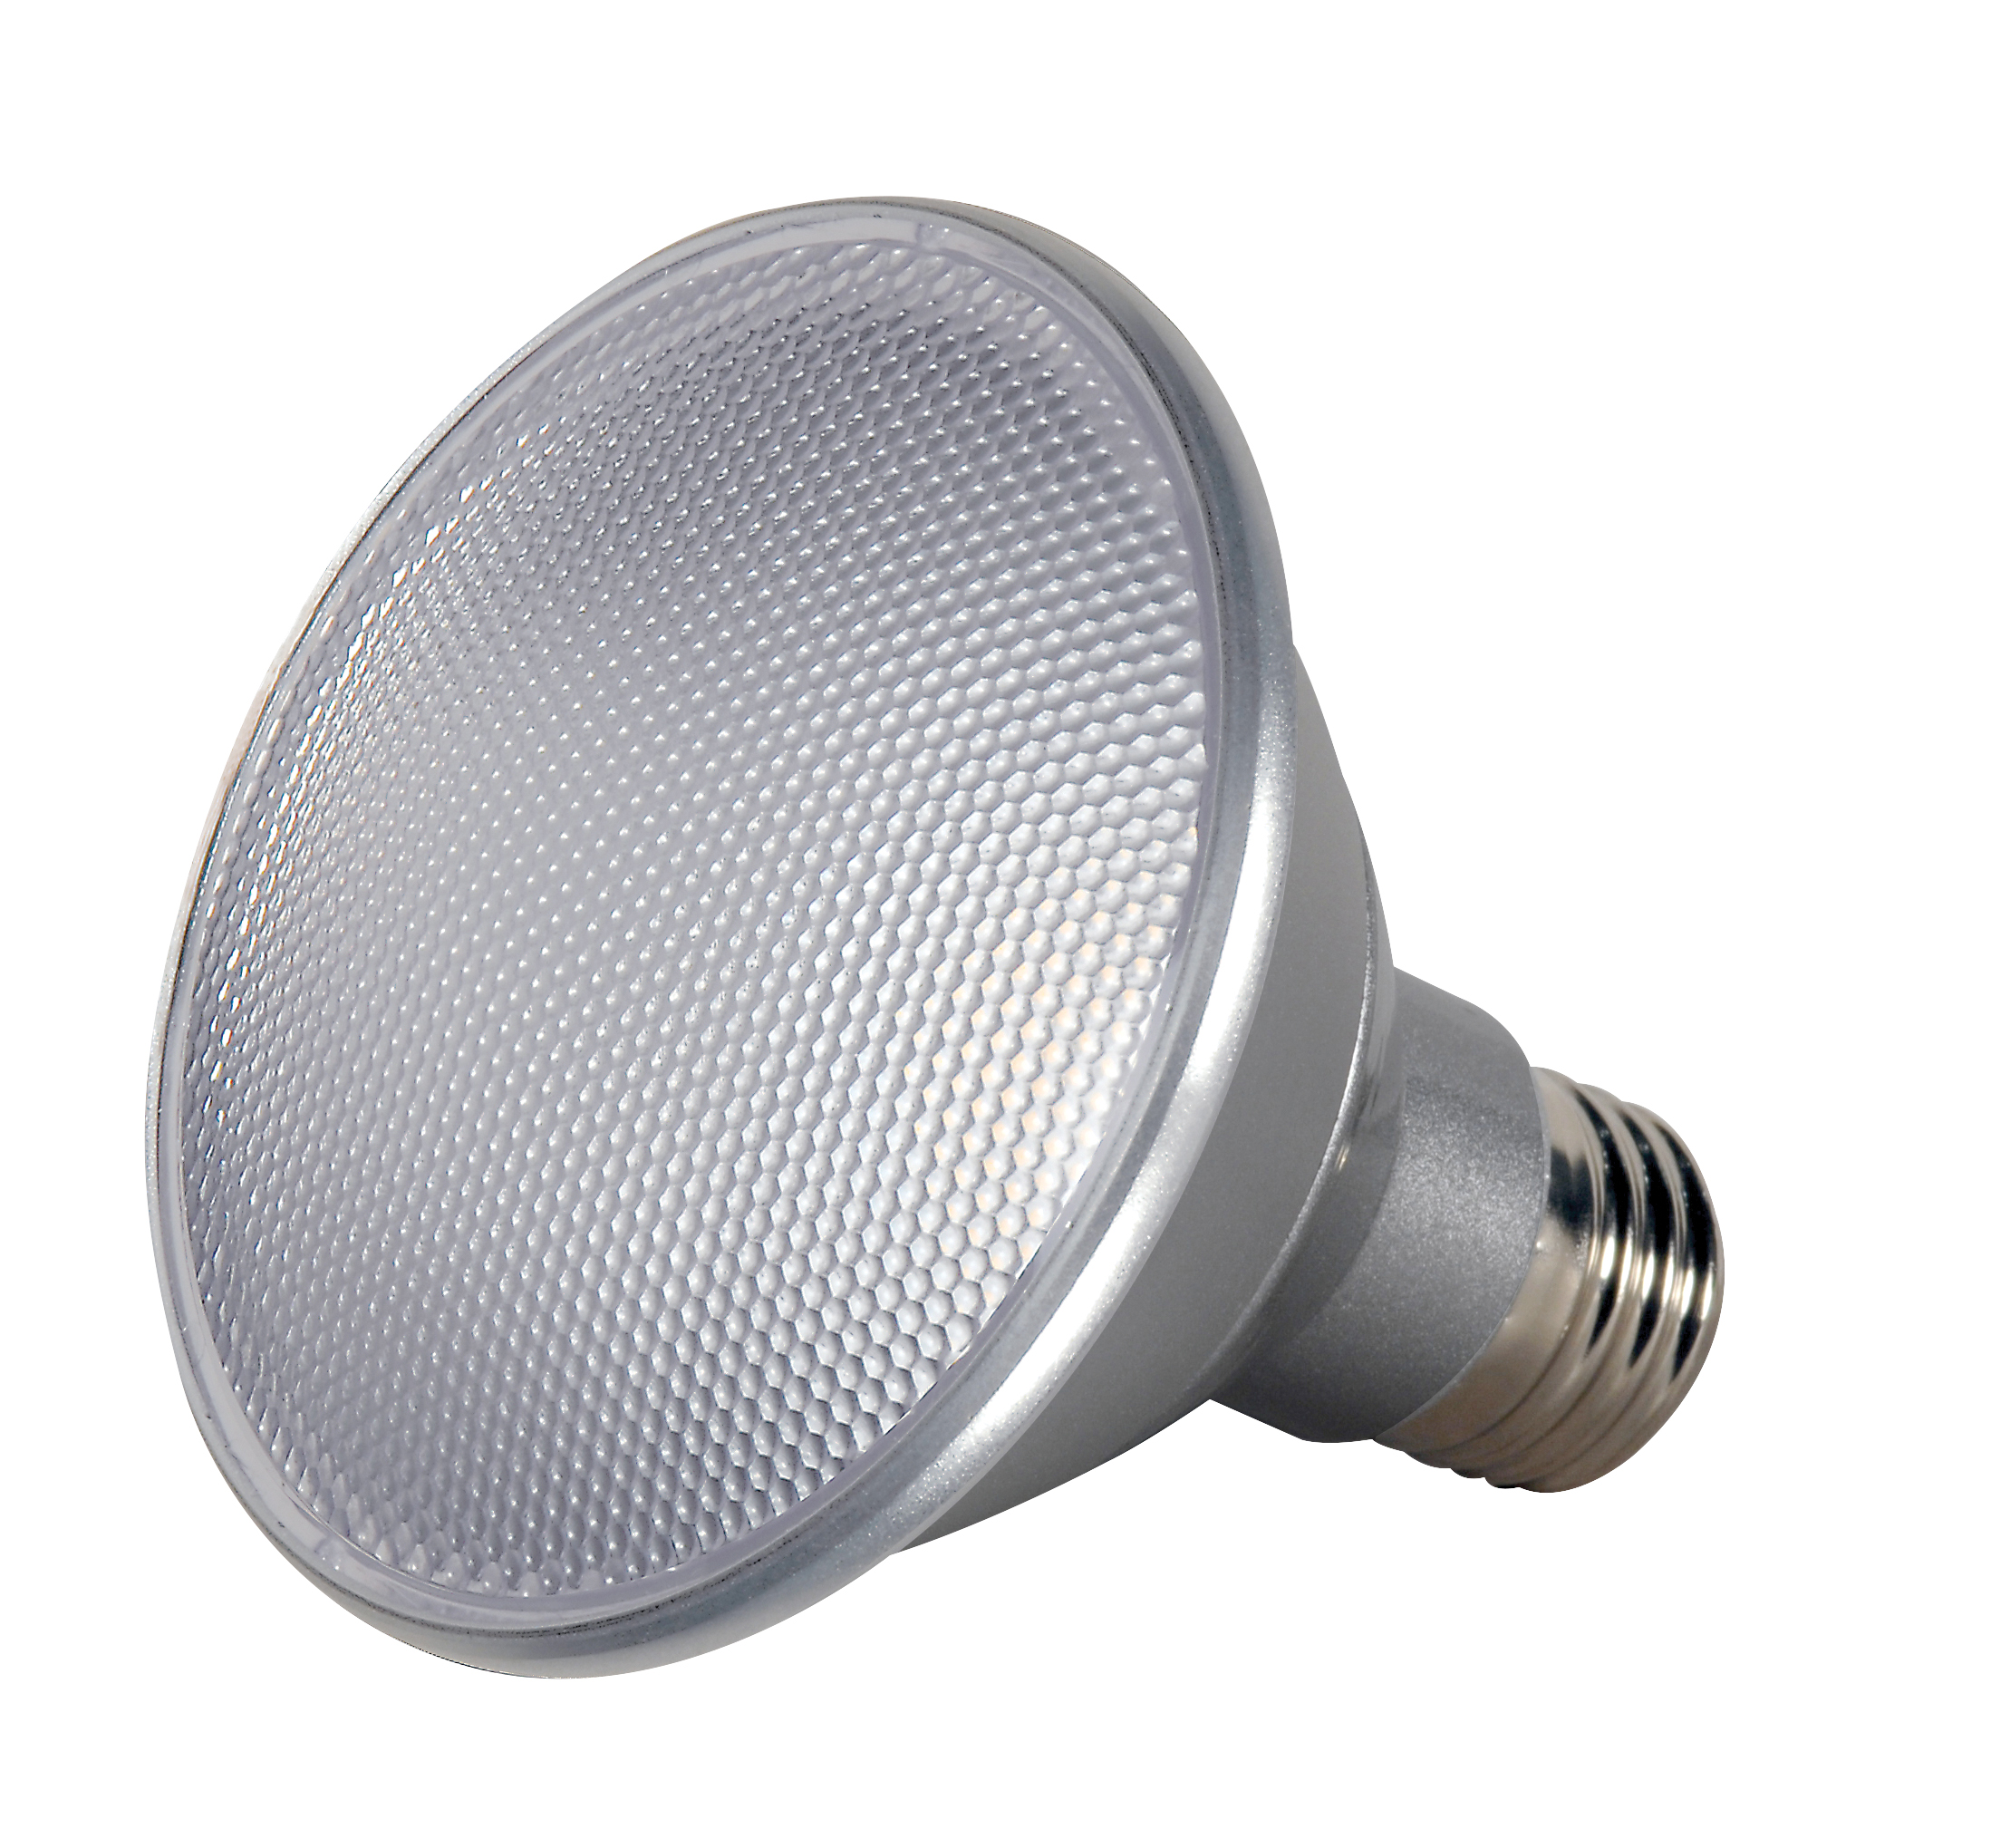 SATCO® S9413 LED Reflective Lamp, 13 W, E26 Medium LED Lamp, PAR30SN Shape, 1000 Initial Lumens